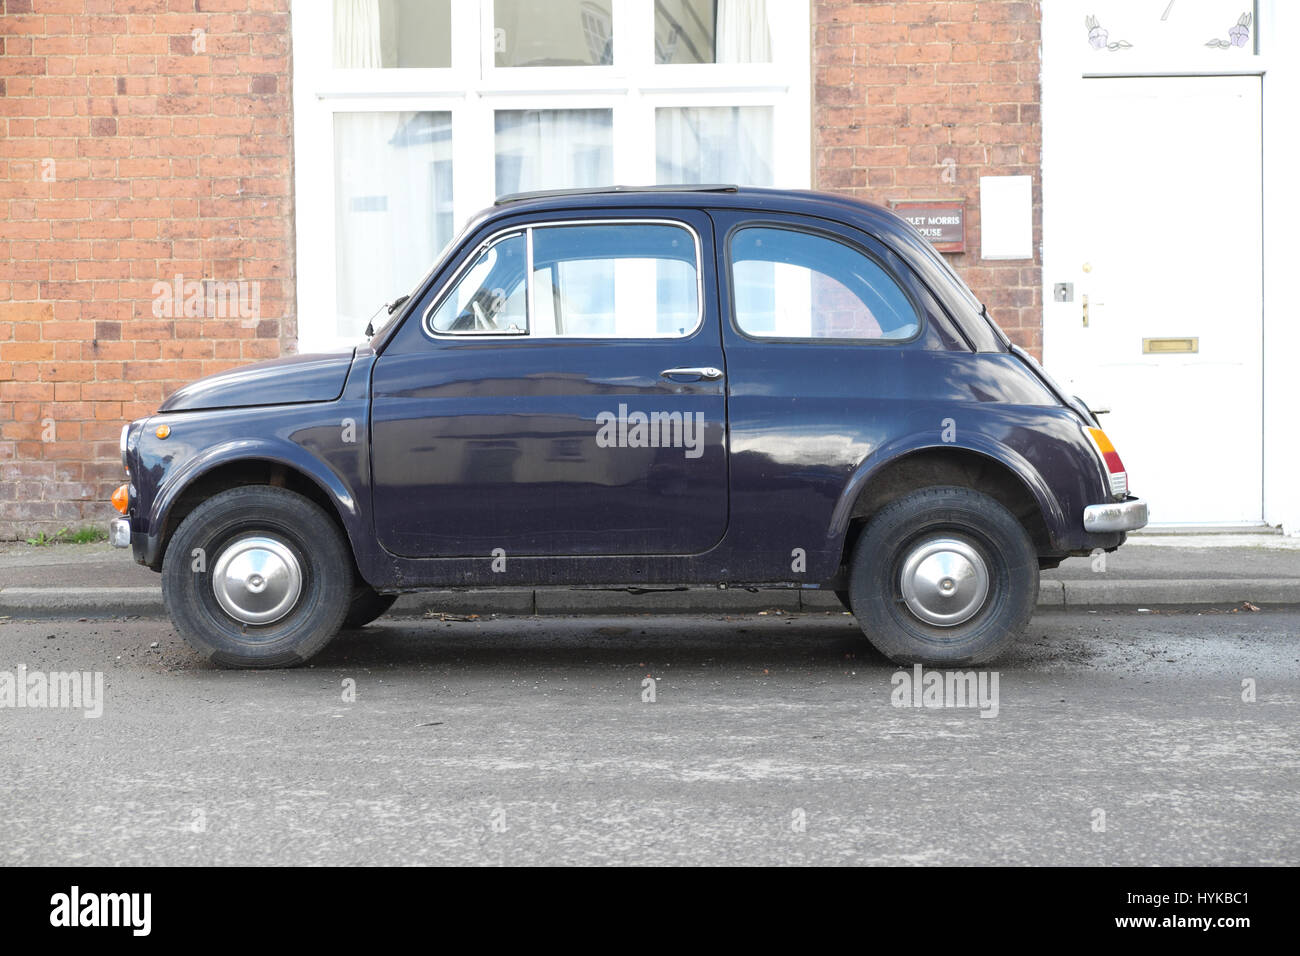 Fiat 500 vintage classic Italian car from the 1960s - Stock Image